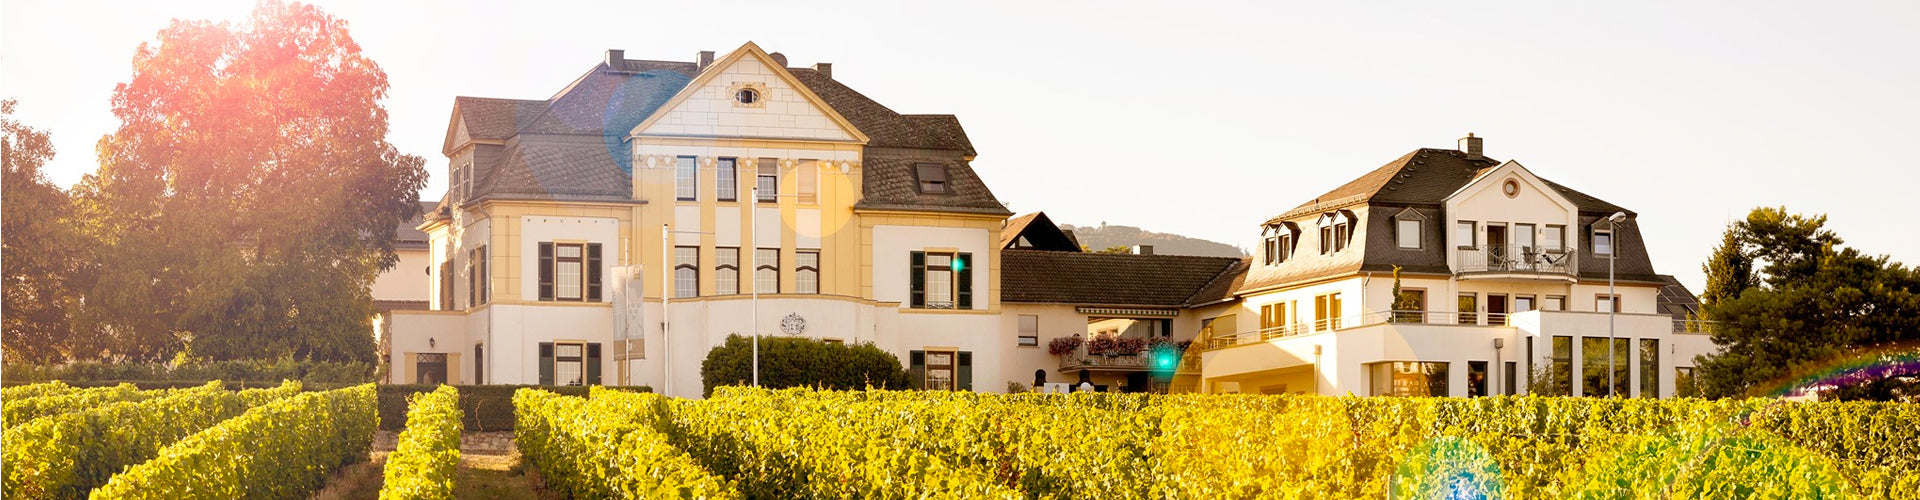 Weingut Spreitzer Winery and Vineyards